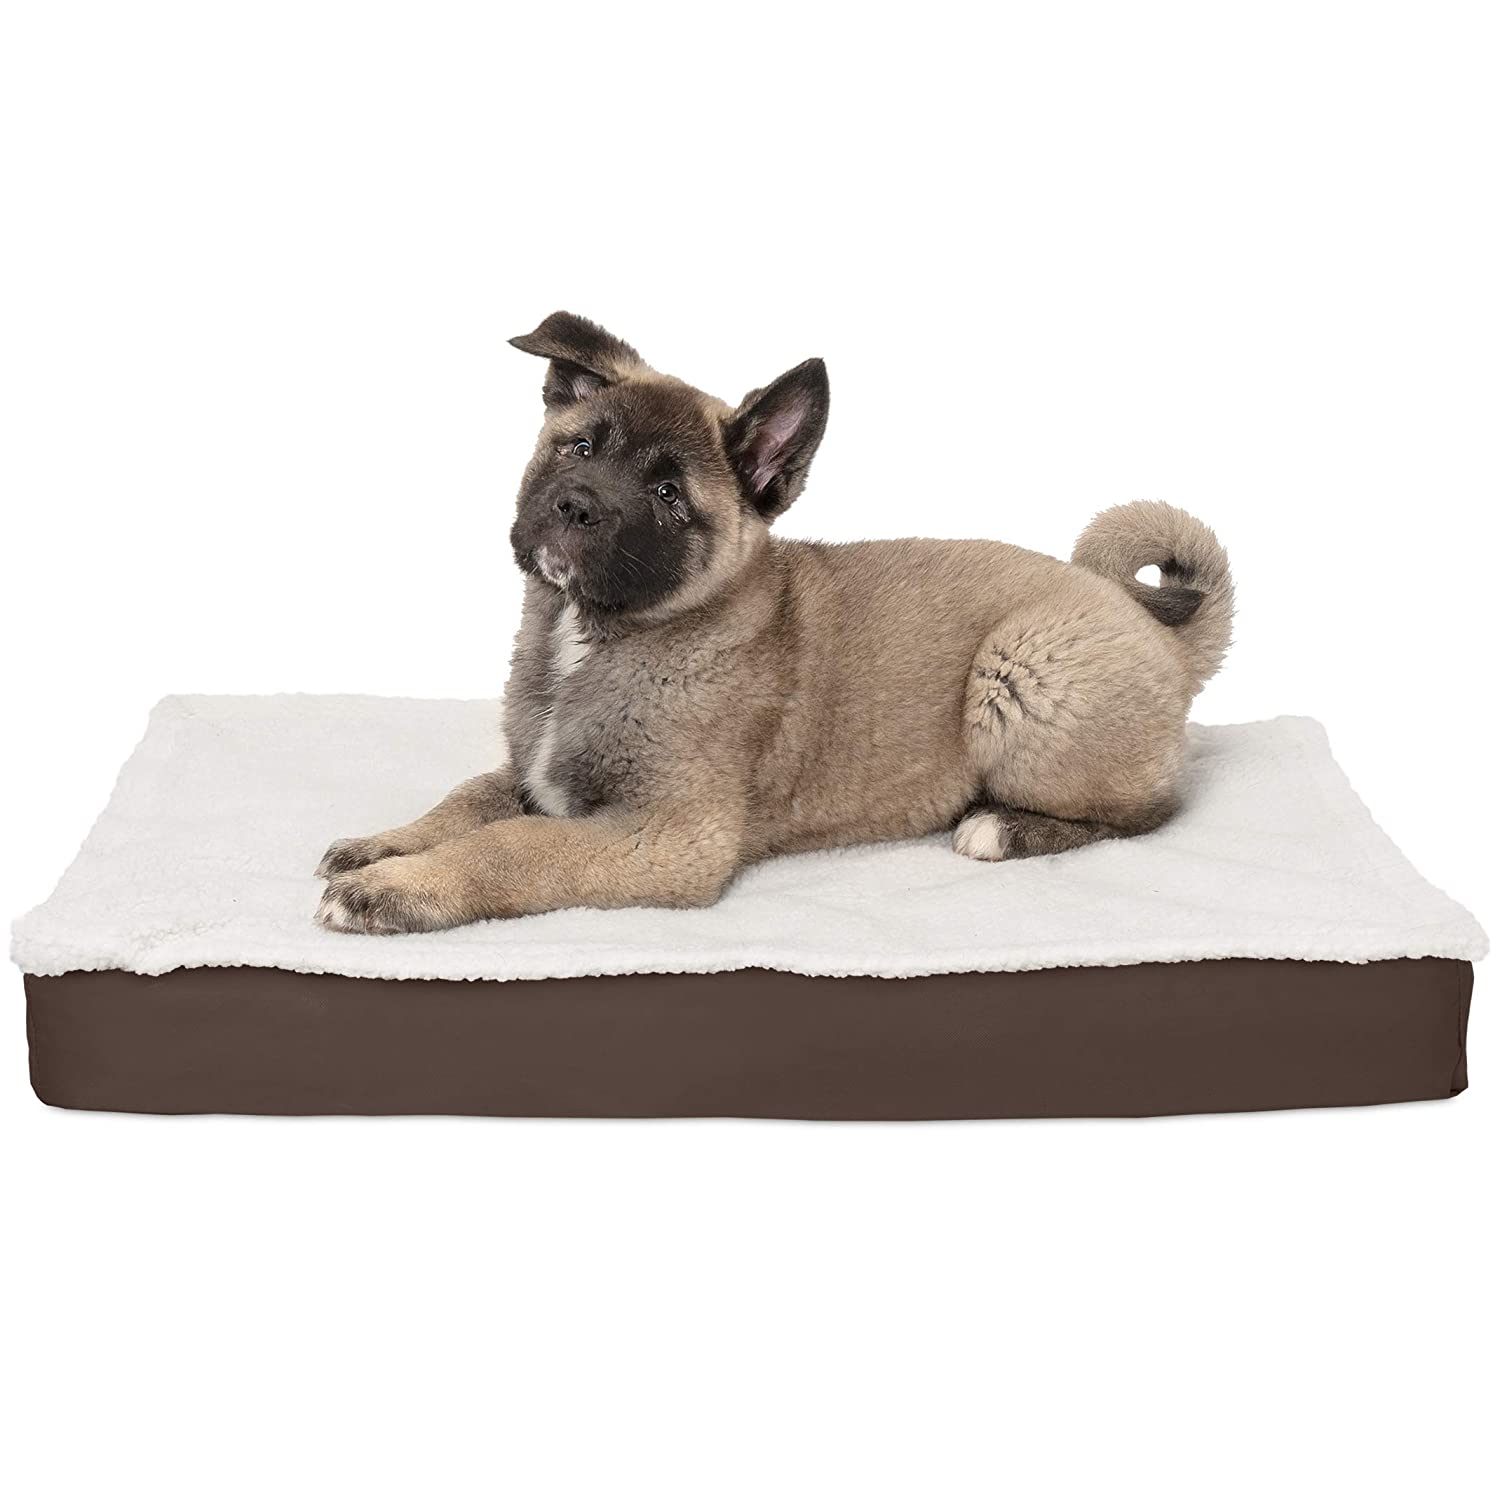 FurHaven Pet Dog Bed   Orthopedic Congreenible Pet Bed Mattress for Dogs & Cats, Espresso, Medium